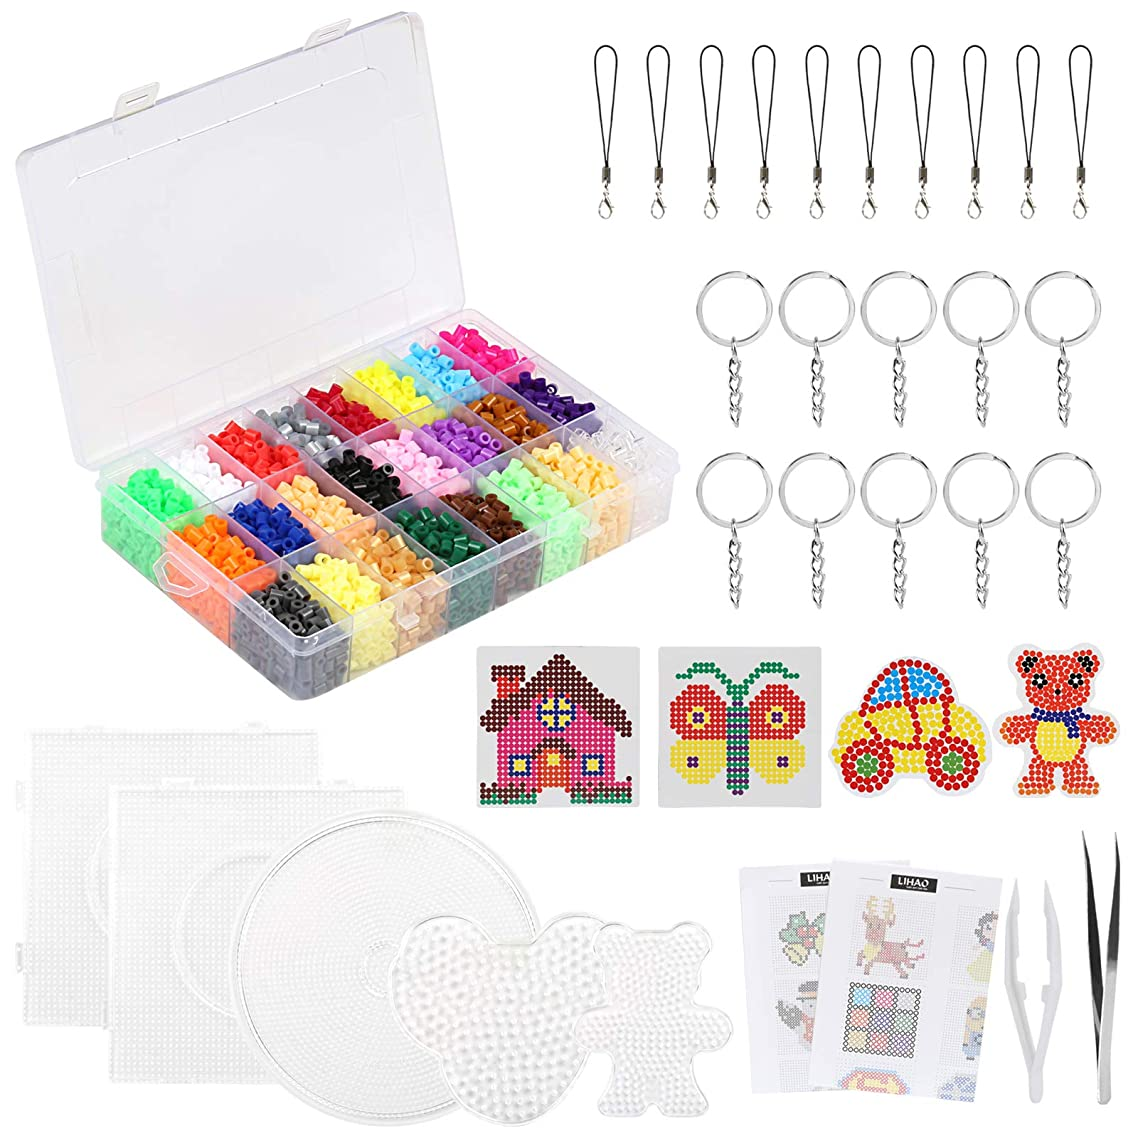 7000x Fuse Beads, 24 Color Fuse Beading Kit for Kids Birthday Party Craft with Pegboards and Ironing Paper